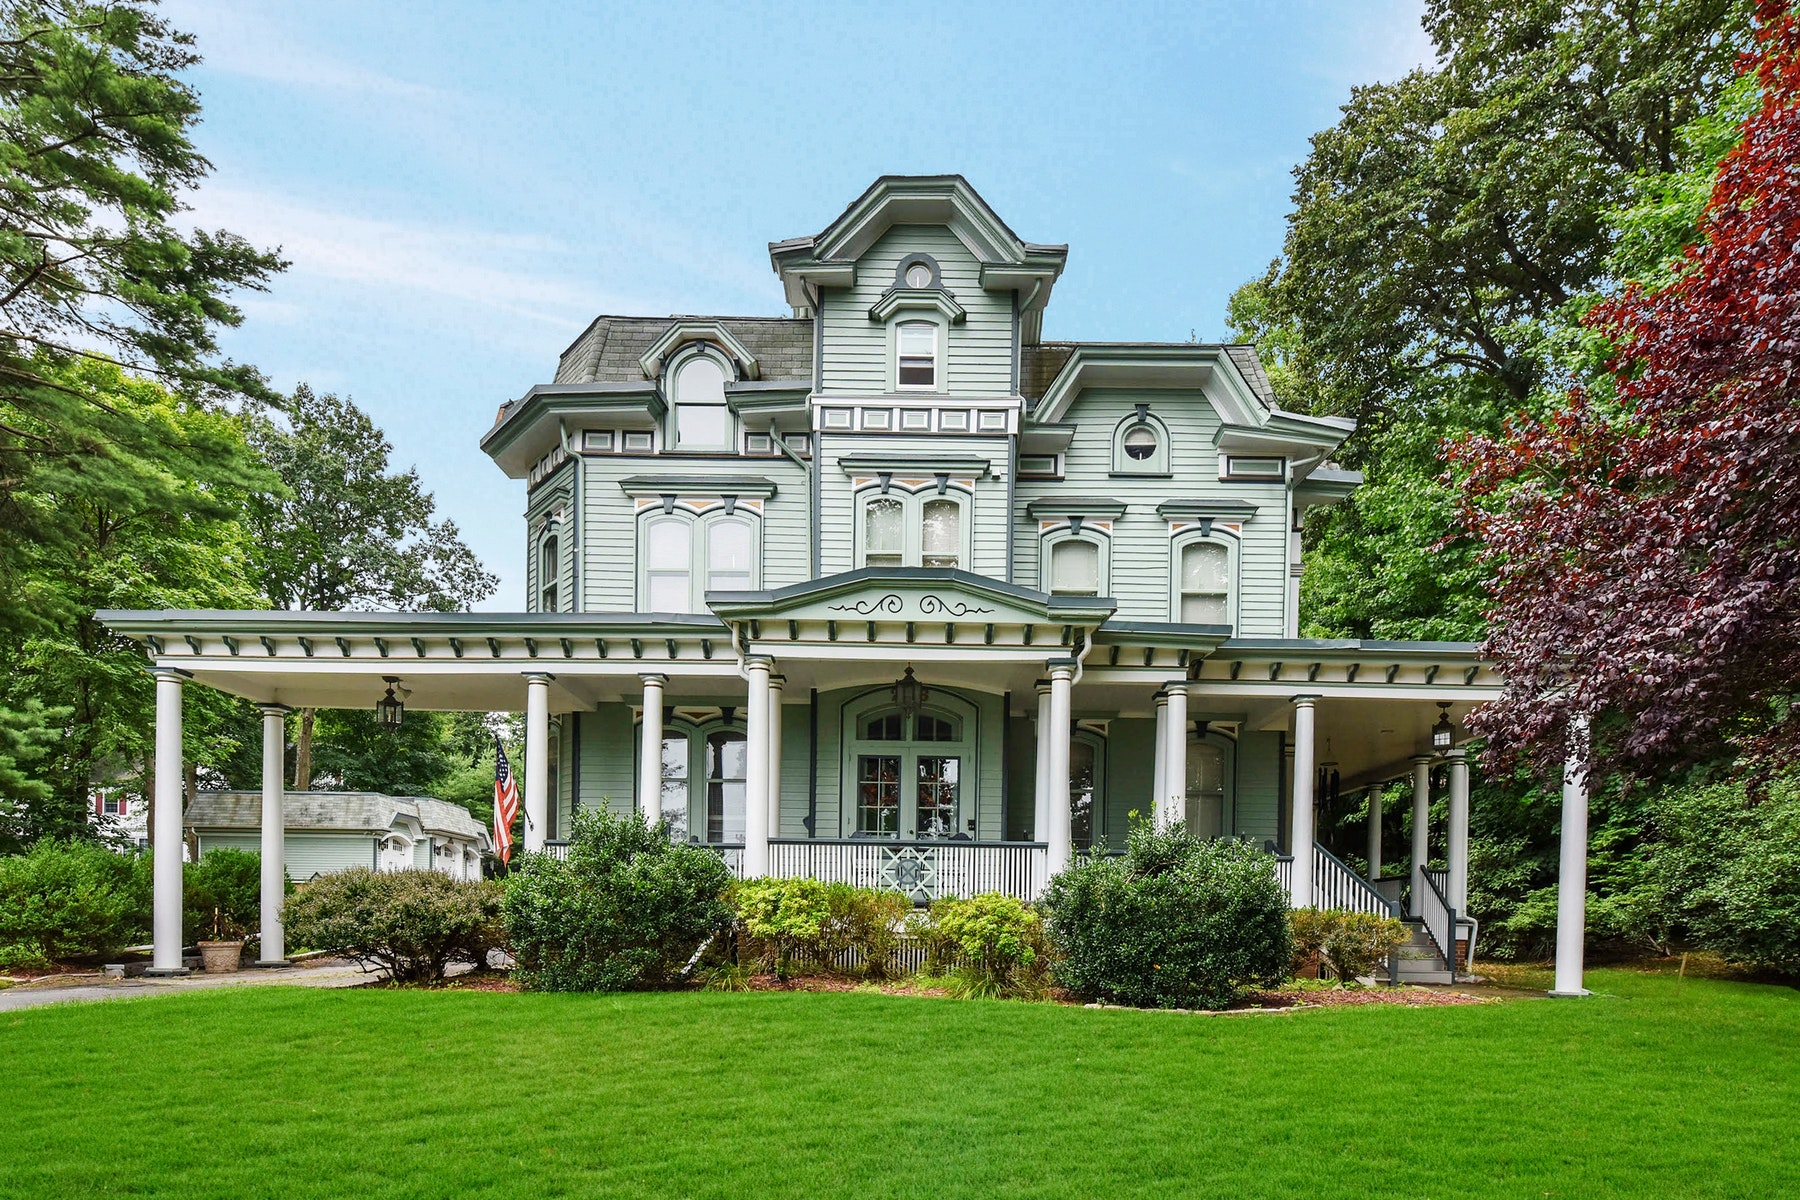 Single Family Home for Sale at Presenting The Iconic Thomas Wallington House Circa 1867. 226 Prospect Street, Ridgewood, New Jersey 07450 United States